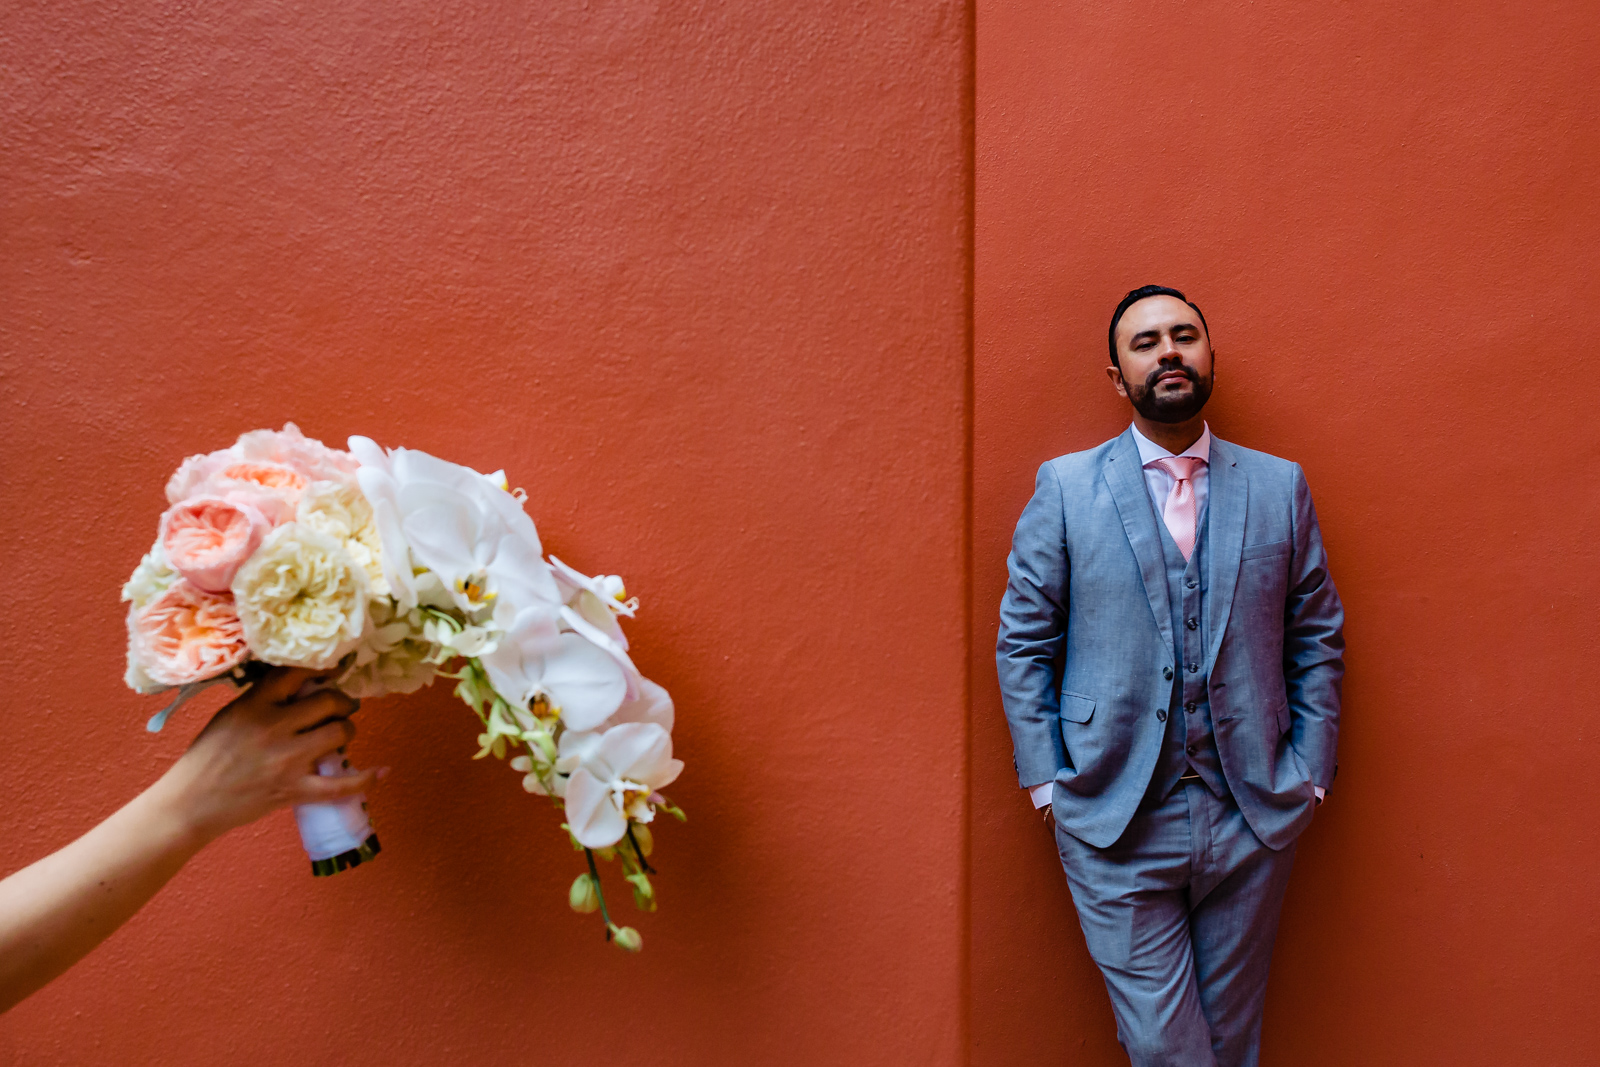 flowers and groom on a red wall